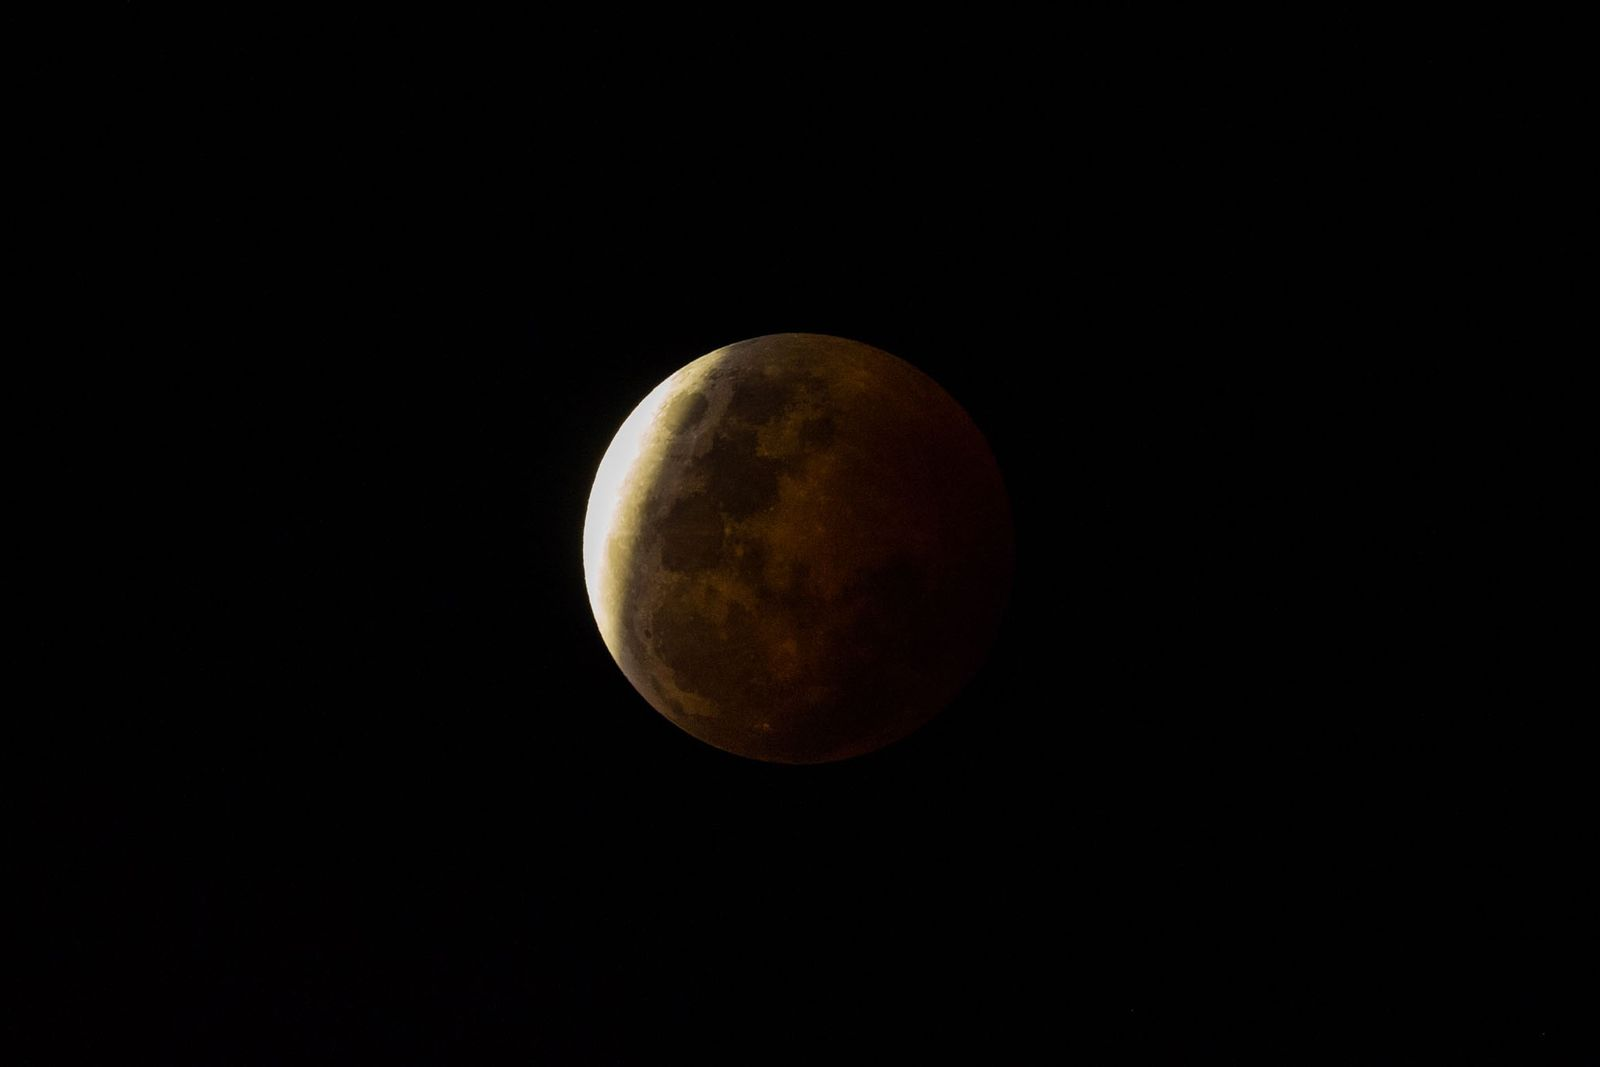 A shadow falls across the face of the moon during a lunar eclipse.